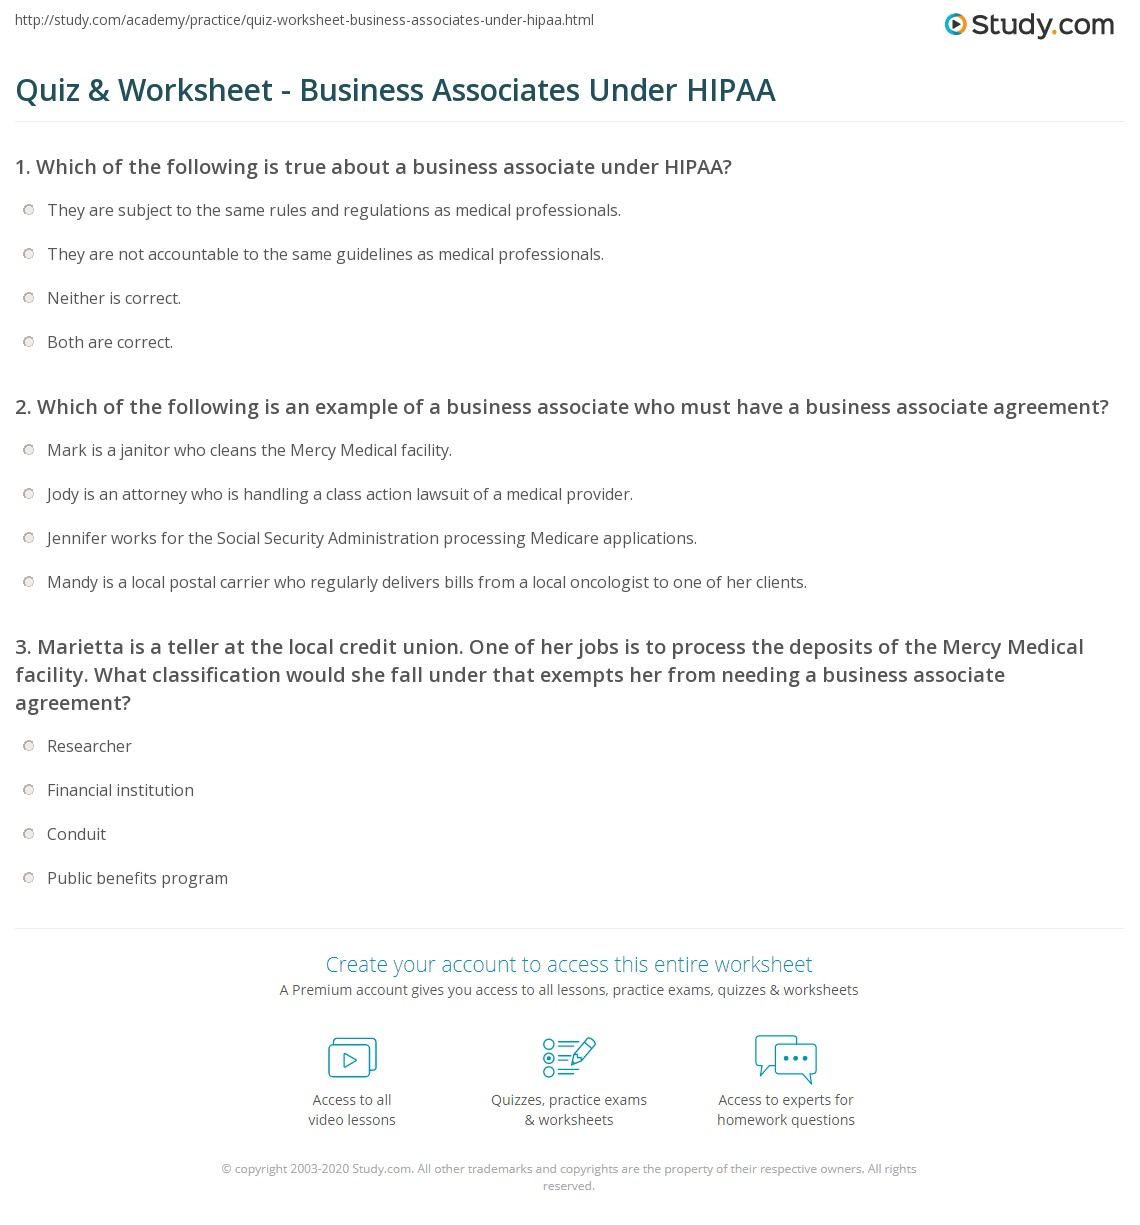 Which Of The Following Is An Example Of A Business Associate Who Must Have  A Business Associate Agreement?